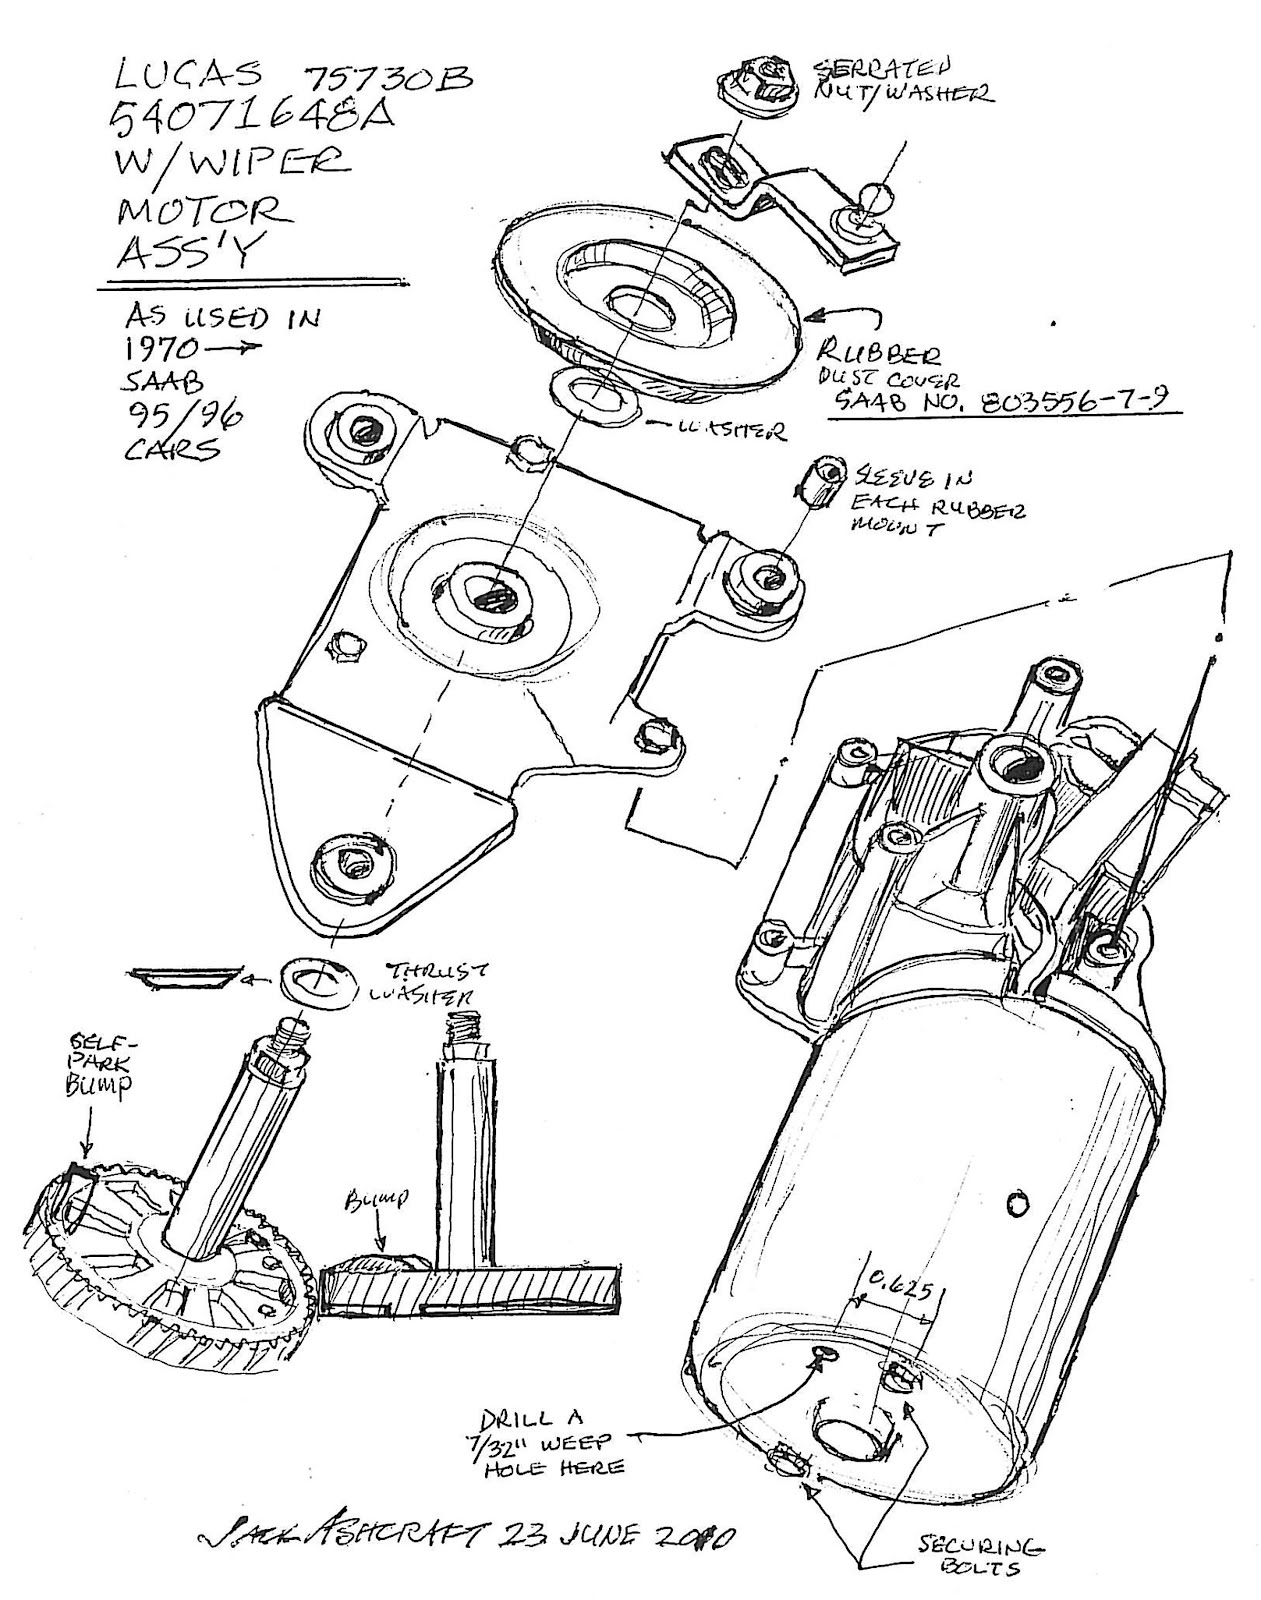 SAAB JOURNAL: SAAB WIPER MOTOR 3RD SERIES